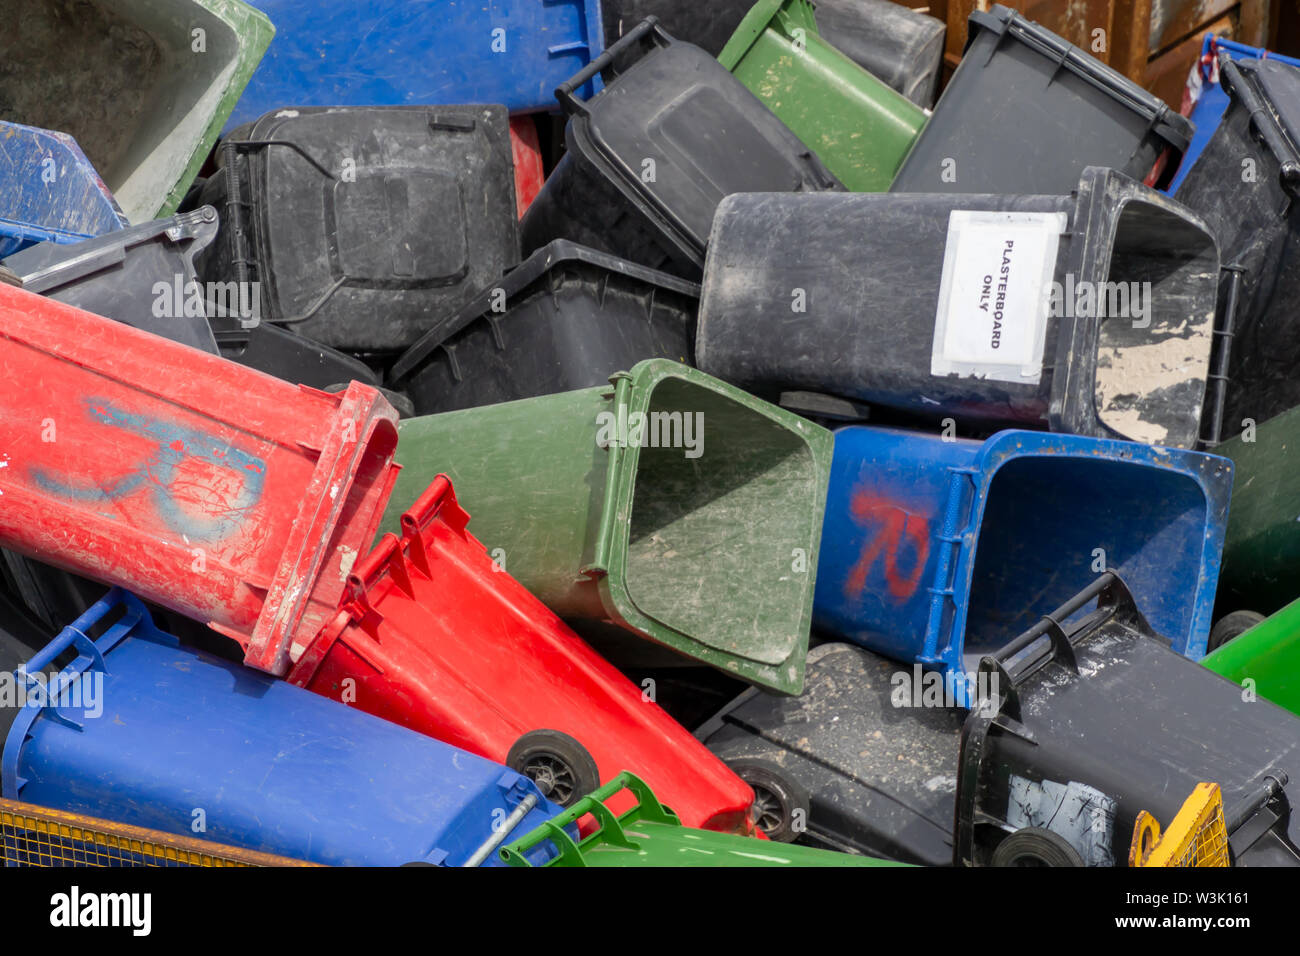 Colorful trash cans. Many plastic garbage cans on the waste waiting to be recycled. Produced from plastic that can be reused, recovery or disposal. - Stock Image